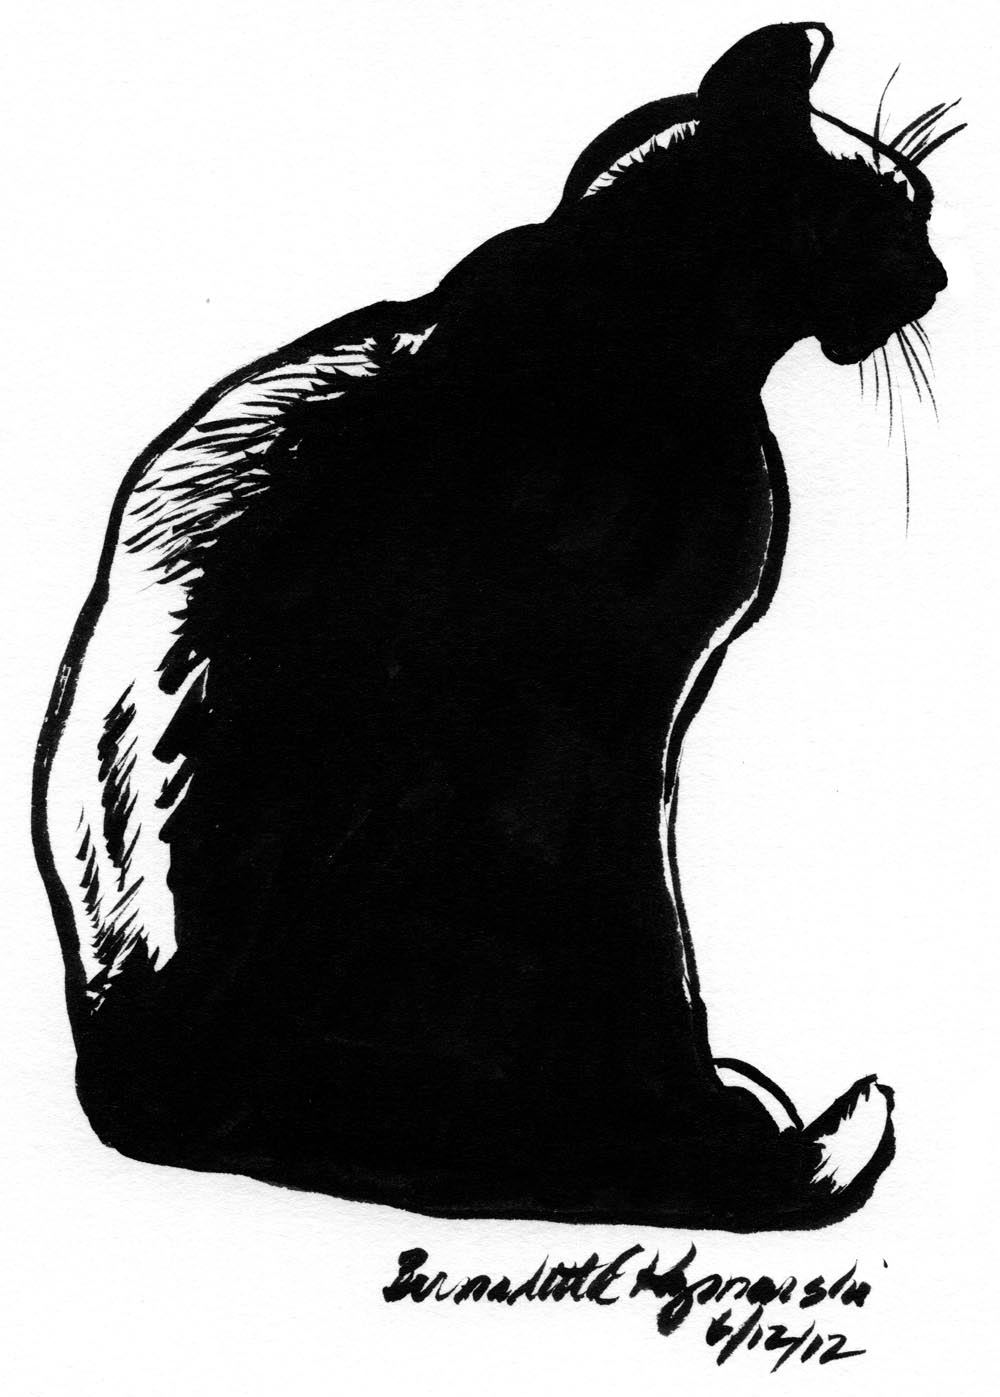 1000x1397 Daily Sketch Reprise Mimi En Silhouette, 2012 ~ The Creative Cat